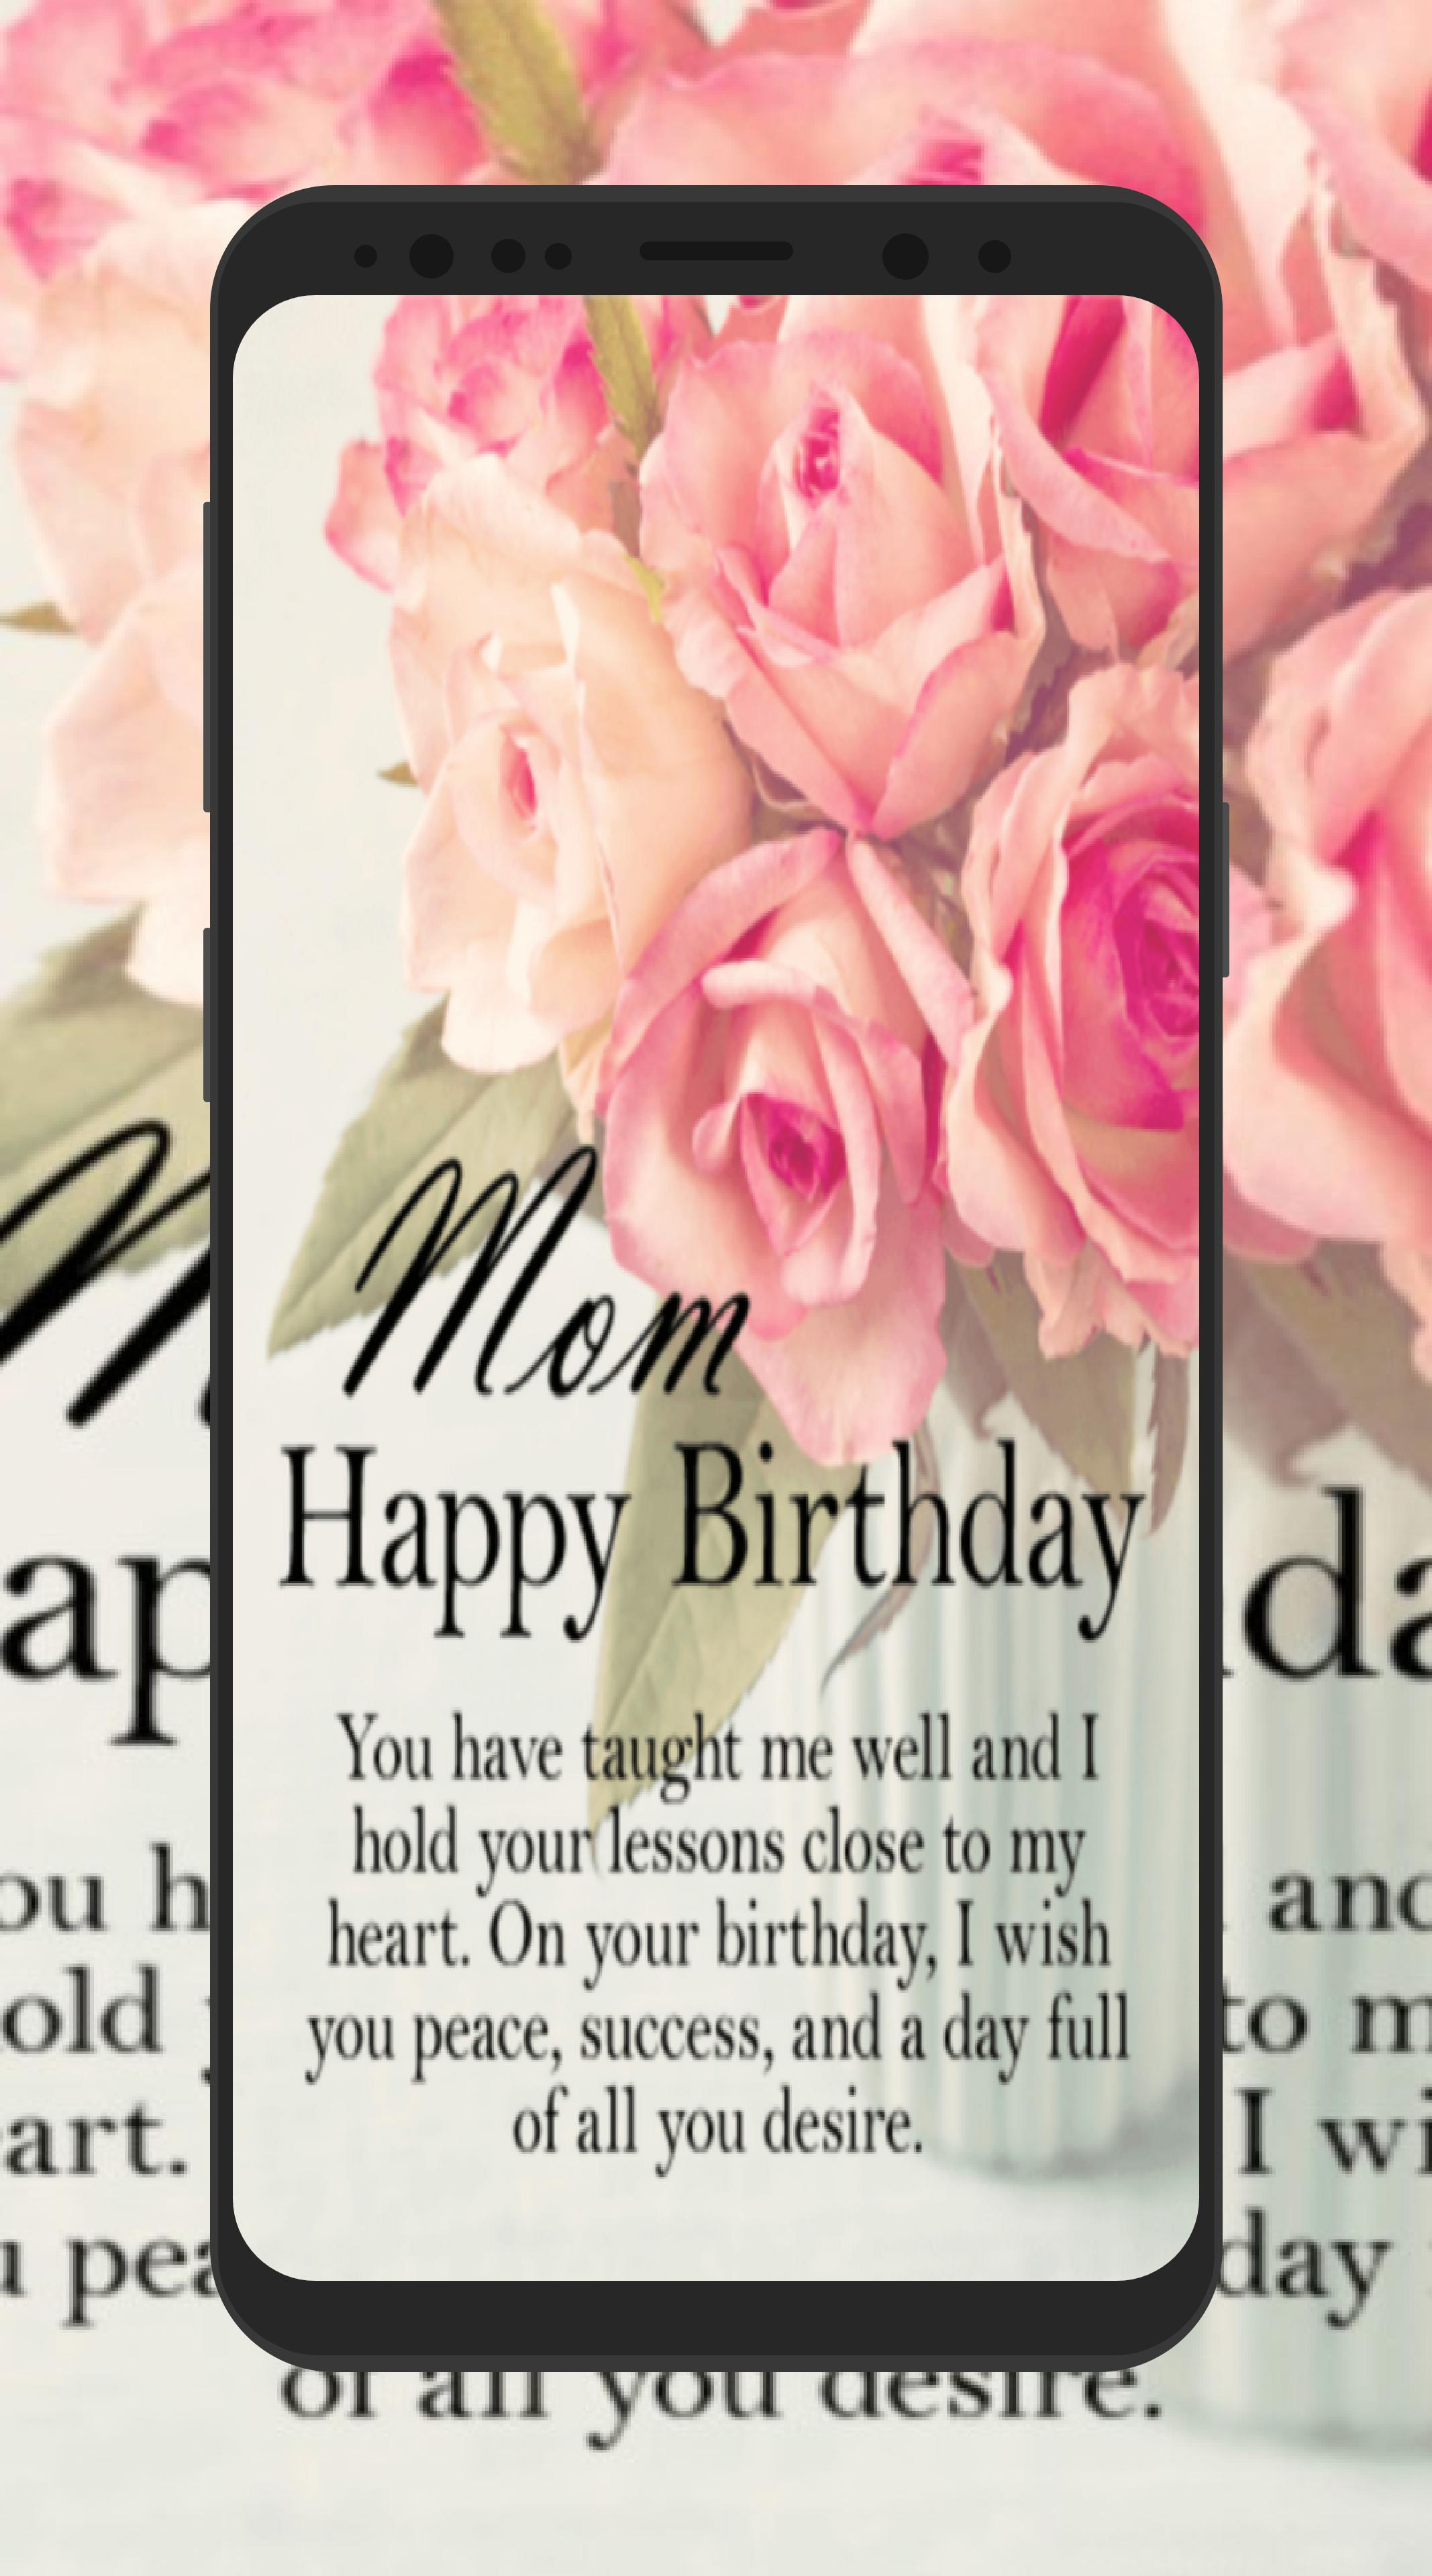 Happy Birthday Quotes And Wishes Gif For Android Apk Download